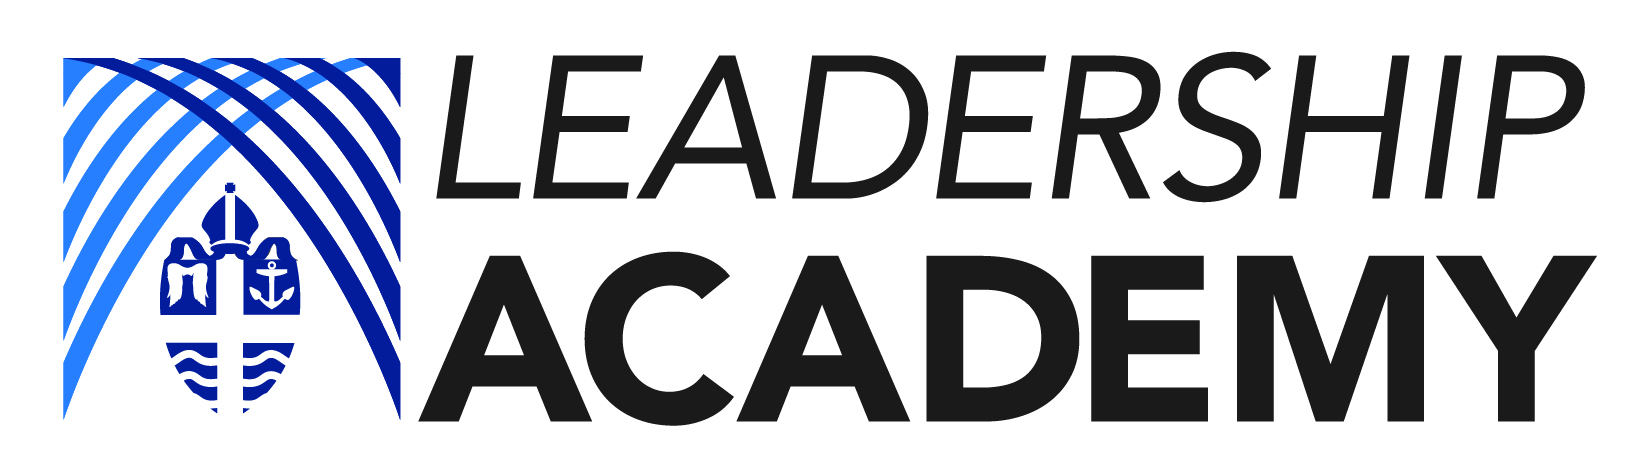 leadership-academy-final-Hori-logo